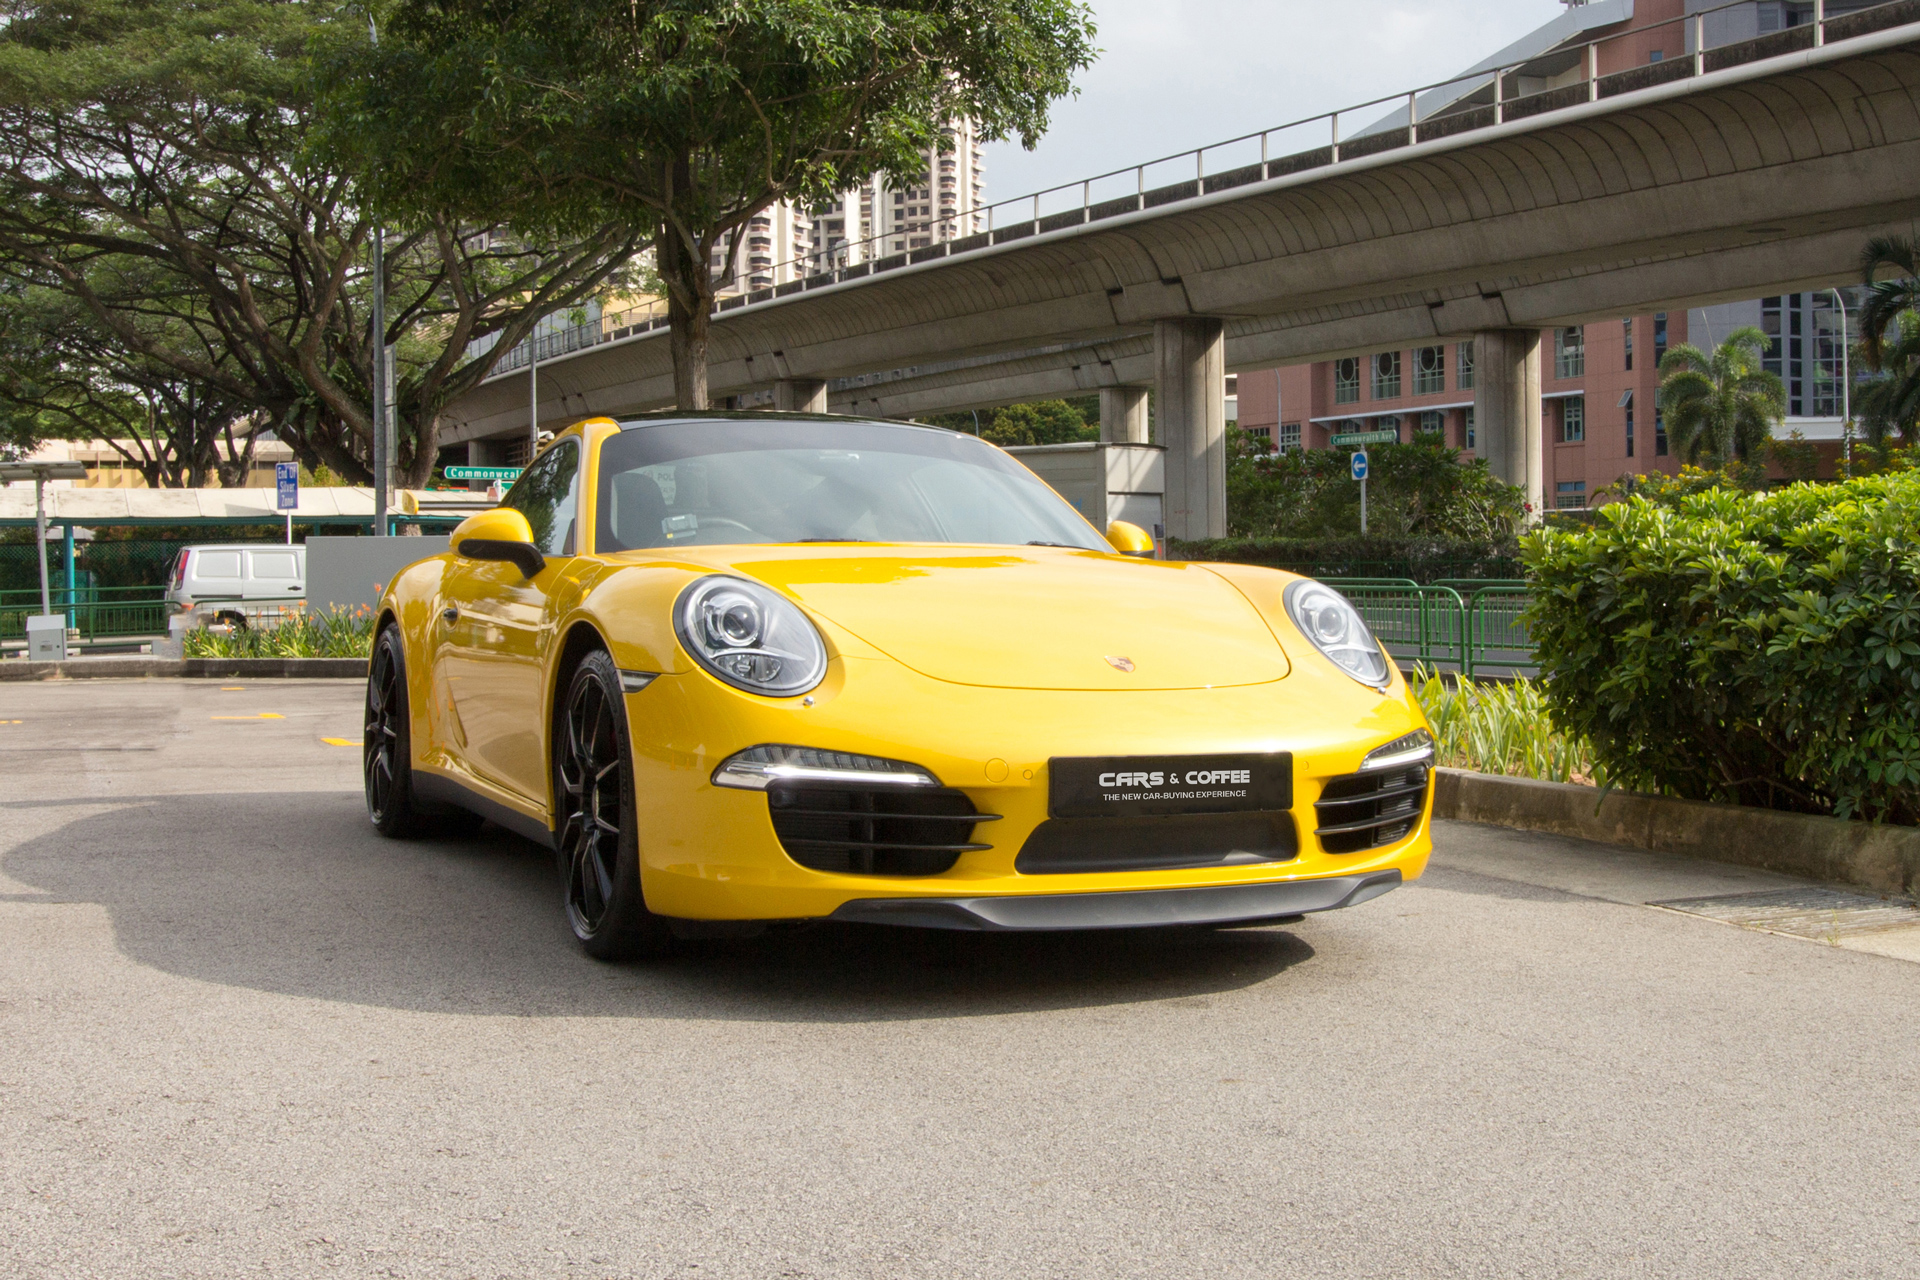 Certified Pre-Owned Porsche 911 Carrera 3.4 Coupe PDK | Cars and Coffee Singapore